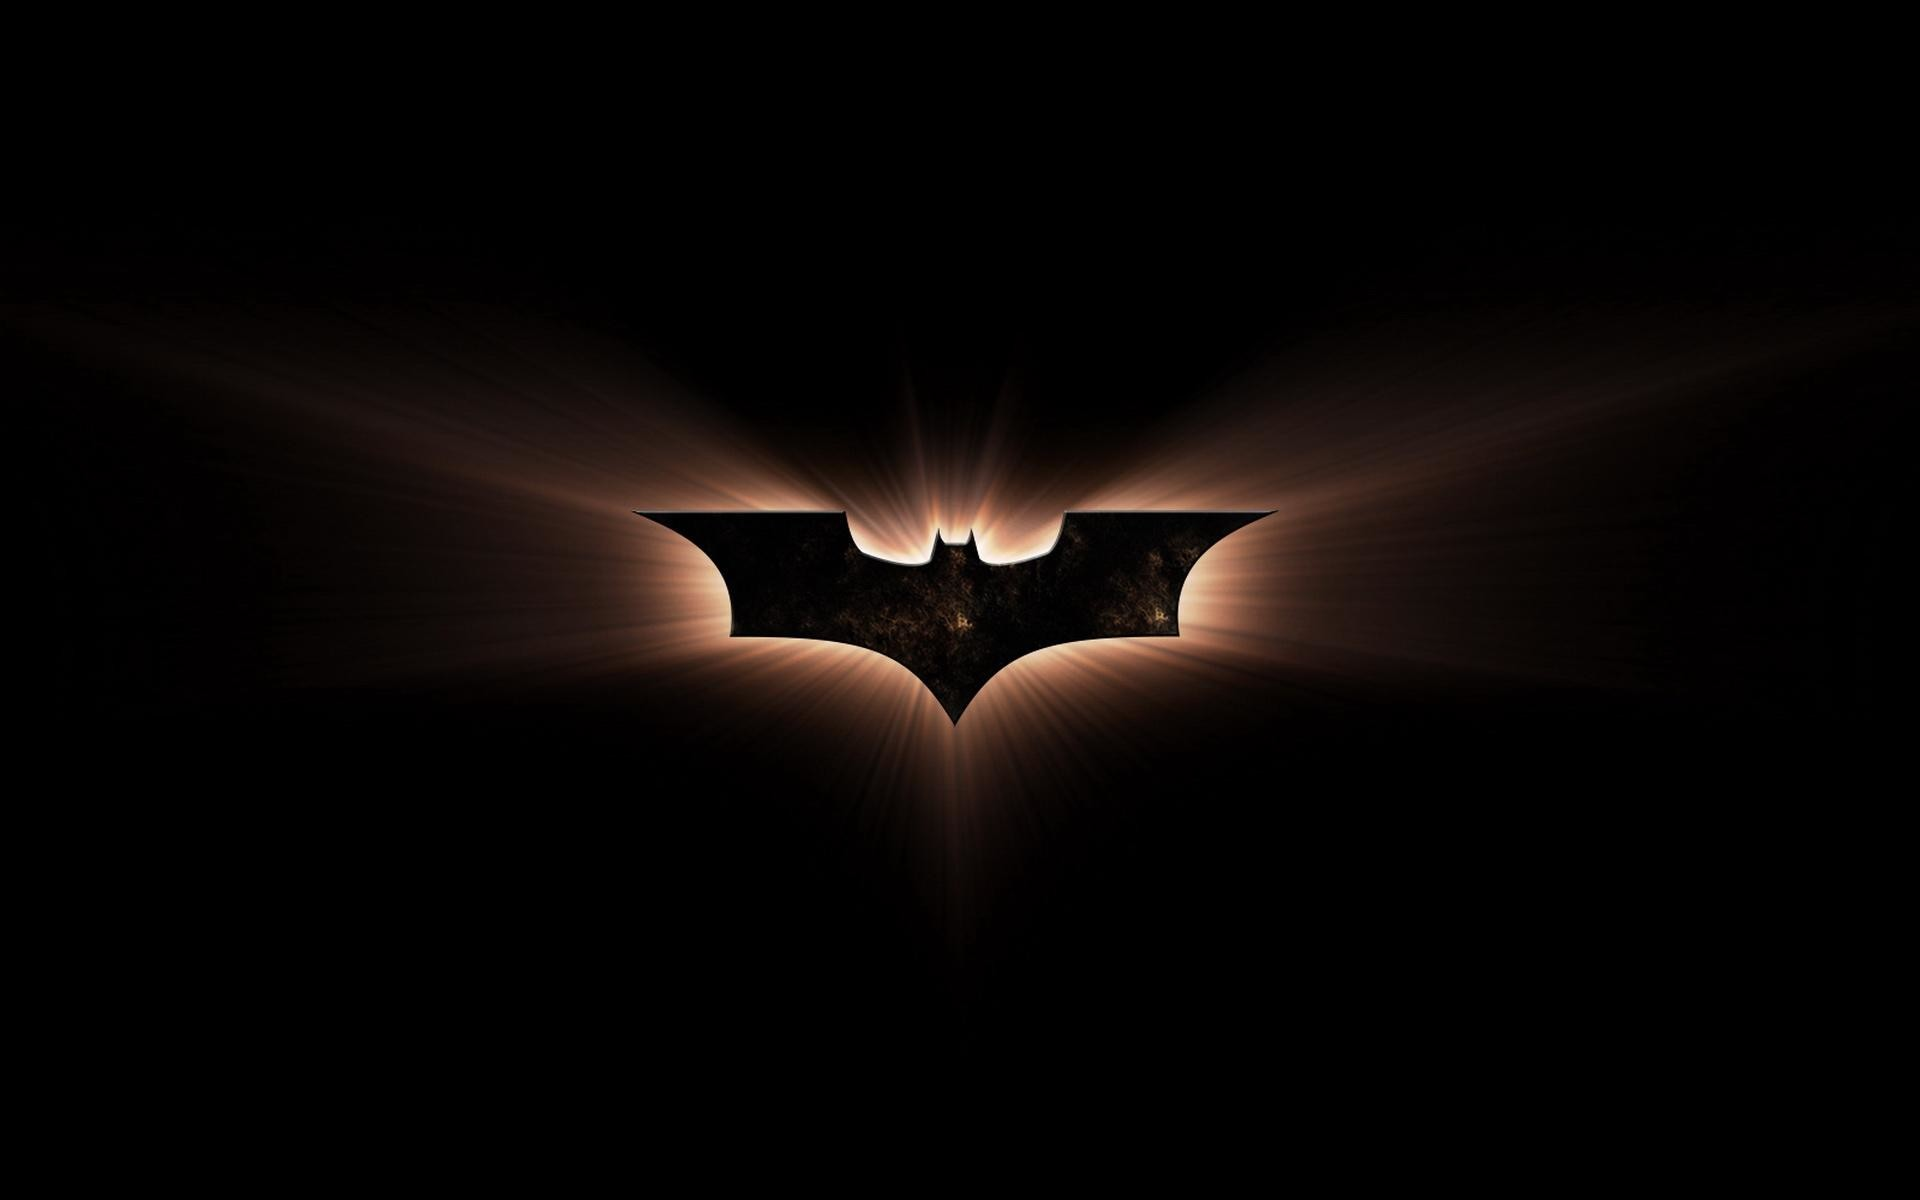 Batman hd wallpapers 1080p 76 images for Where to get wallpaper